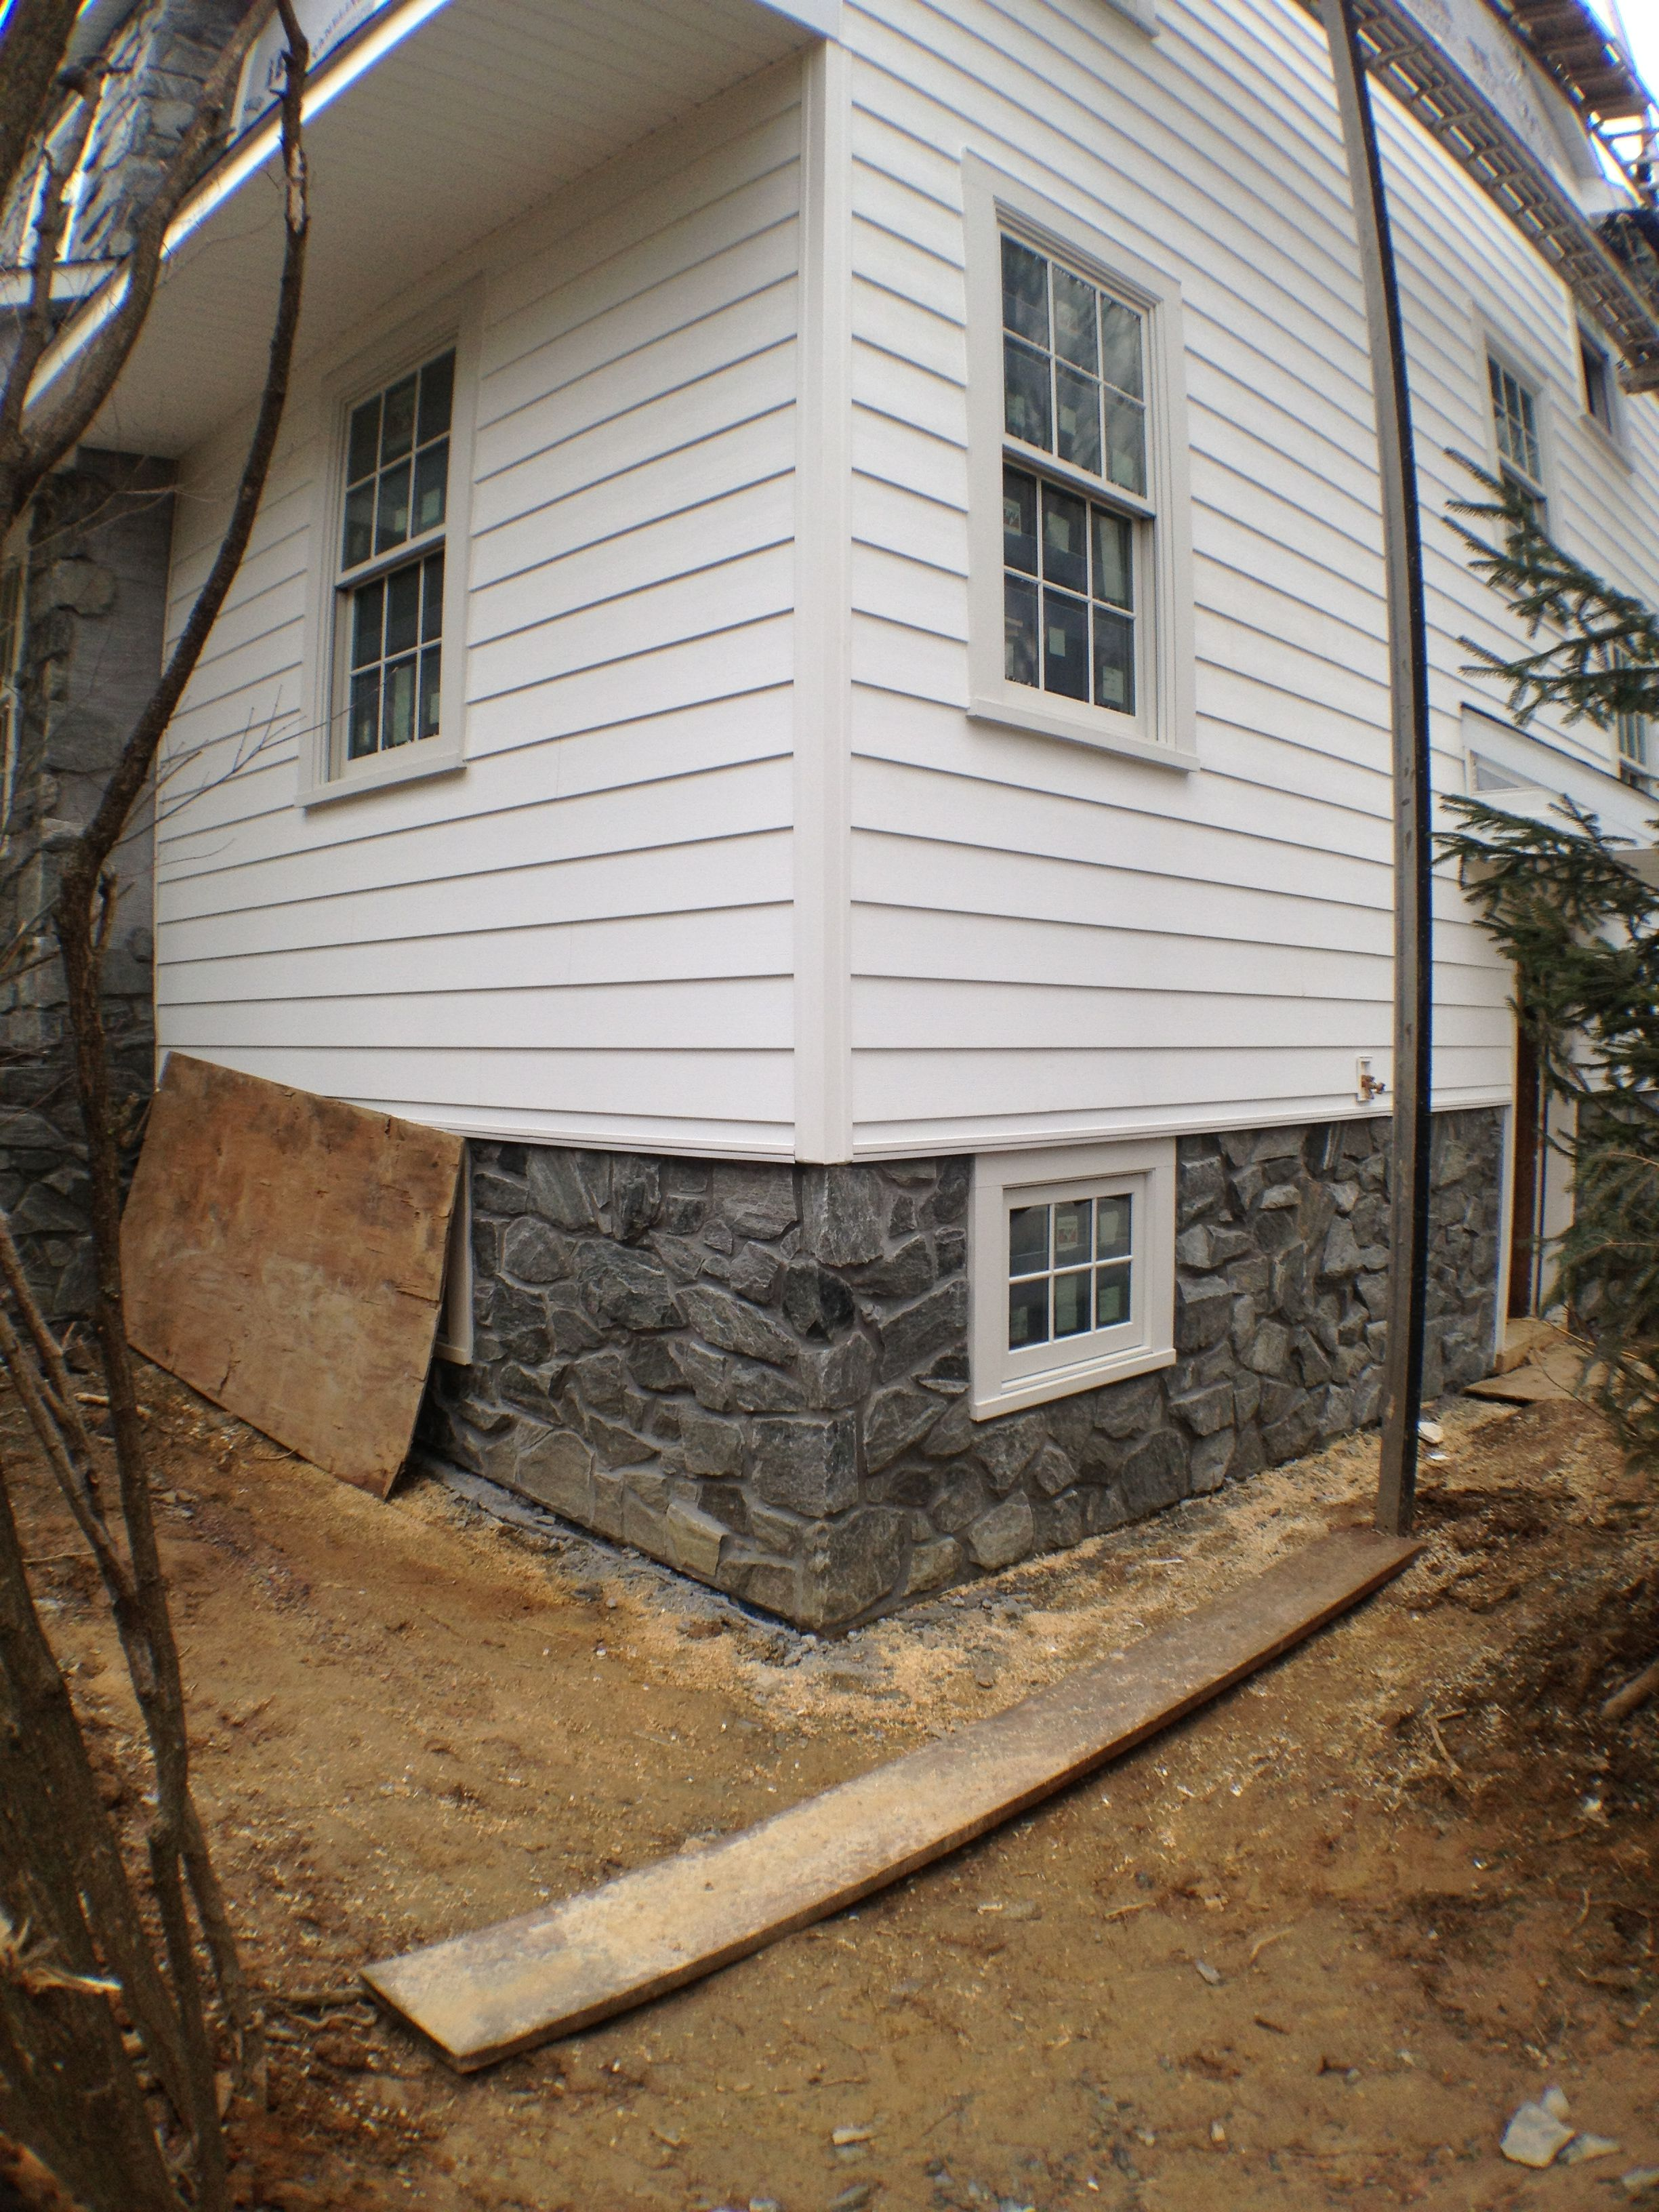 Everlast Siding And Real Stone Veneer With Andersen Windows Exterior House Options House Exterior Real Stone Veneer